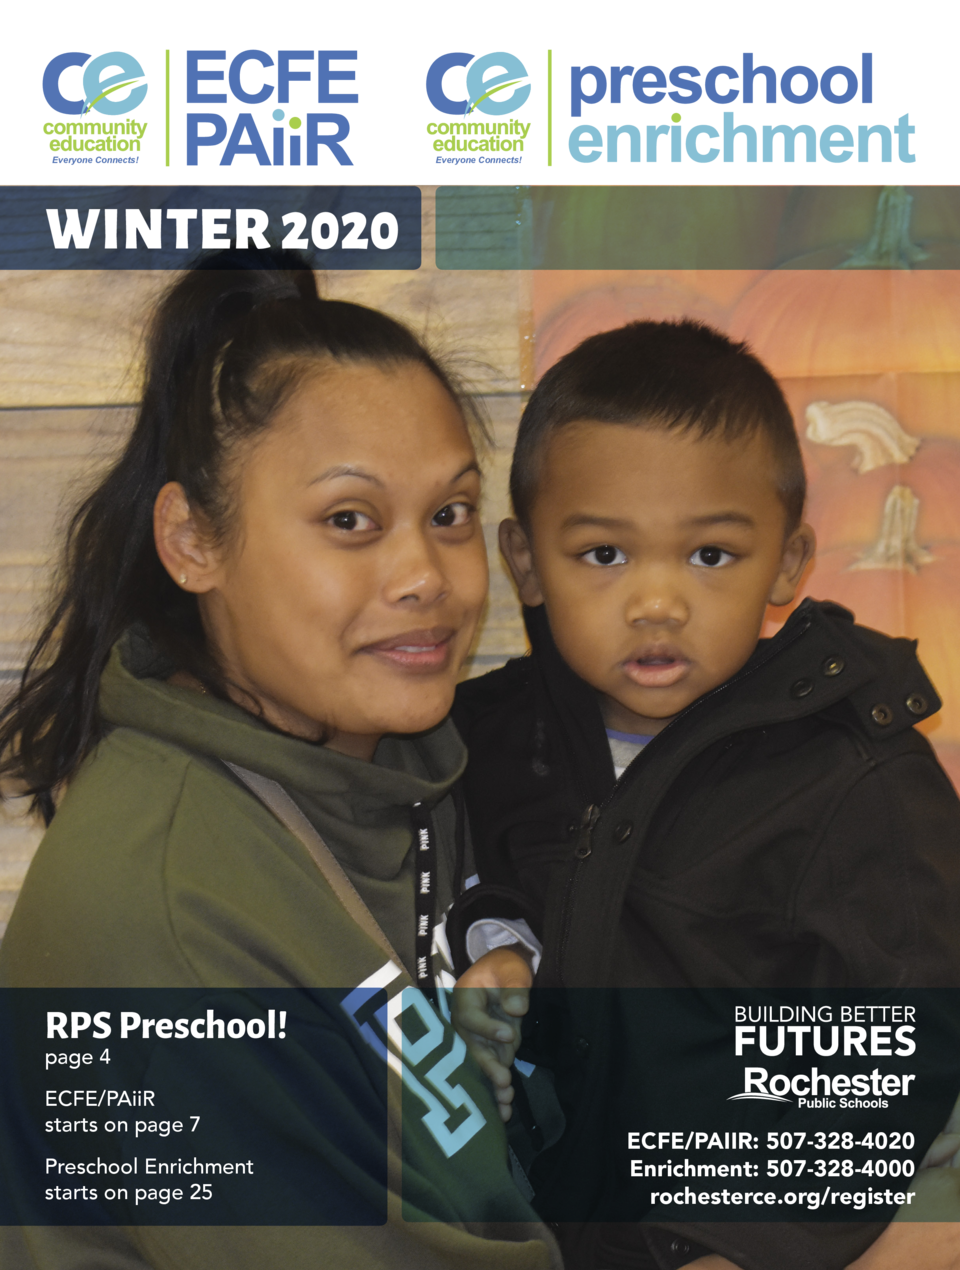 Everyone Connects   Everyone Connects   WINTER 2020  RPS Preschool  page 4  ECFE PAiiR starts on page 7 Preschool Enrichme...